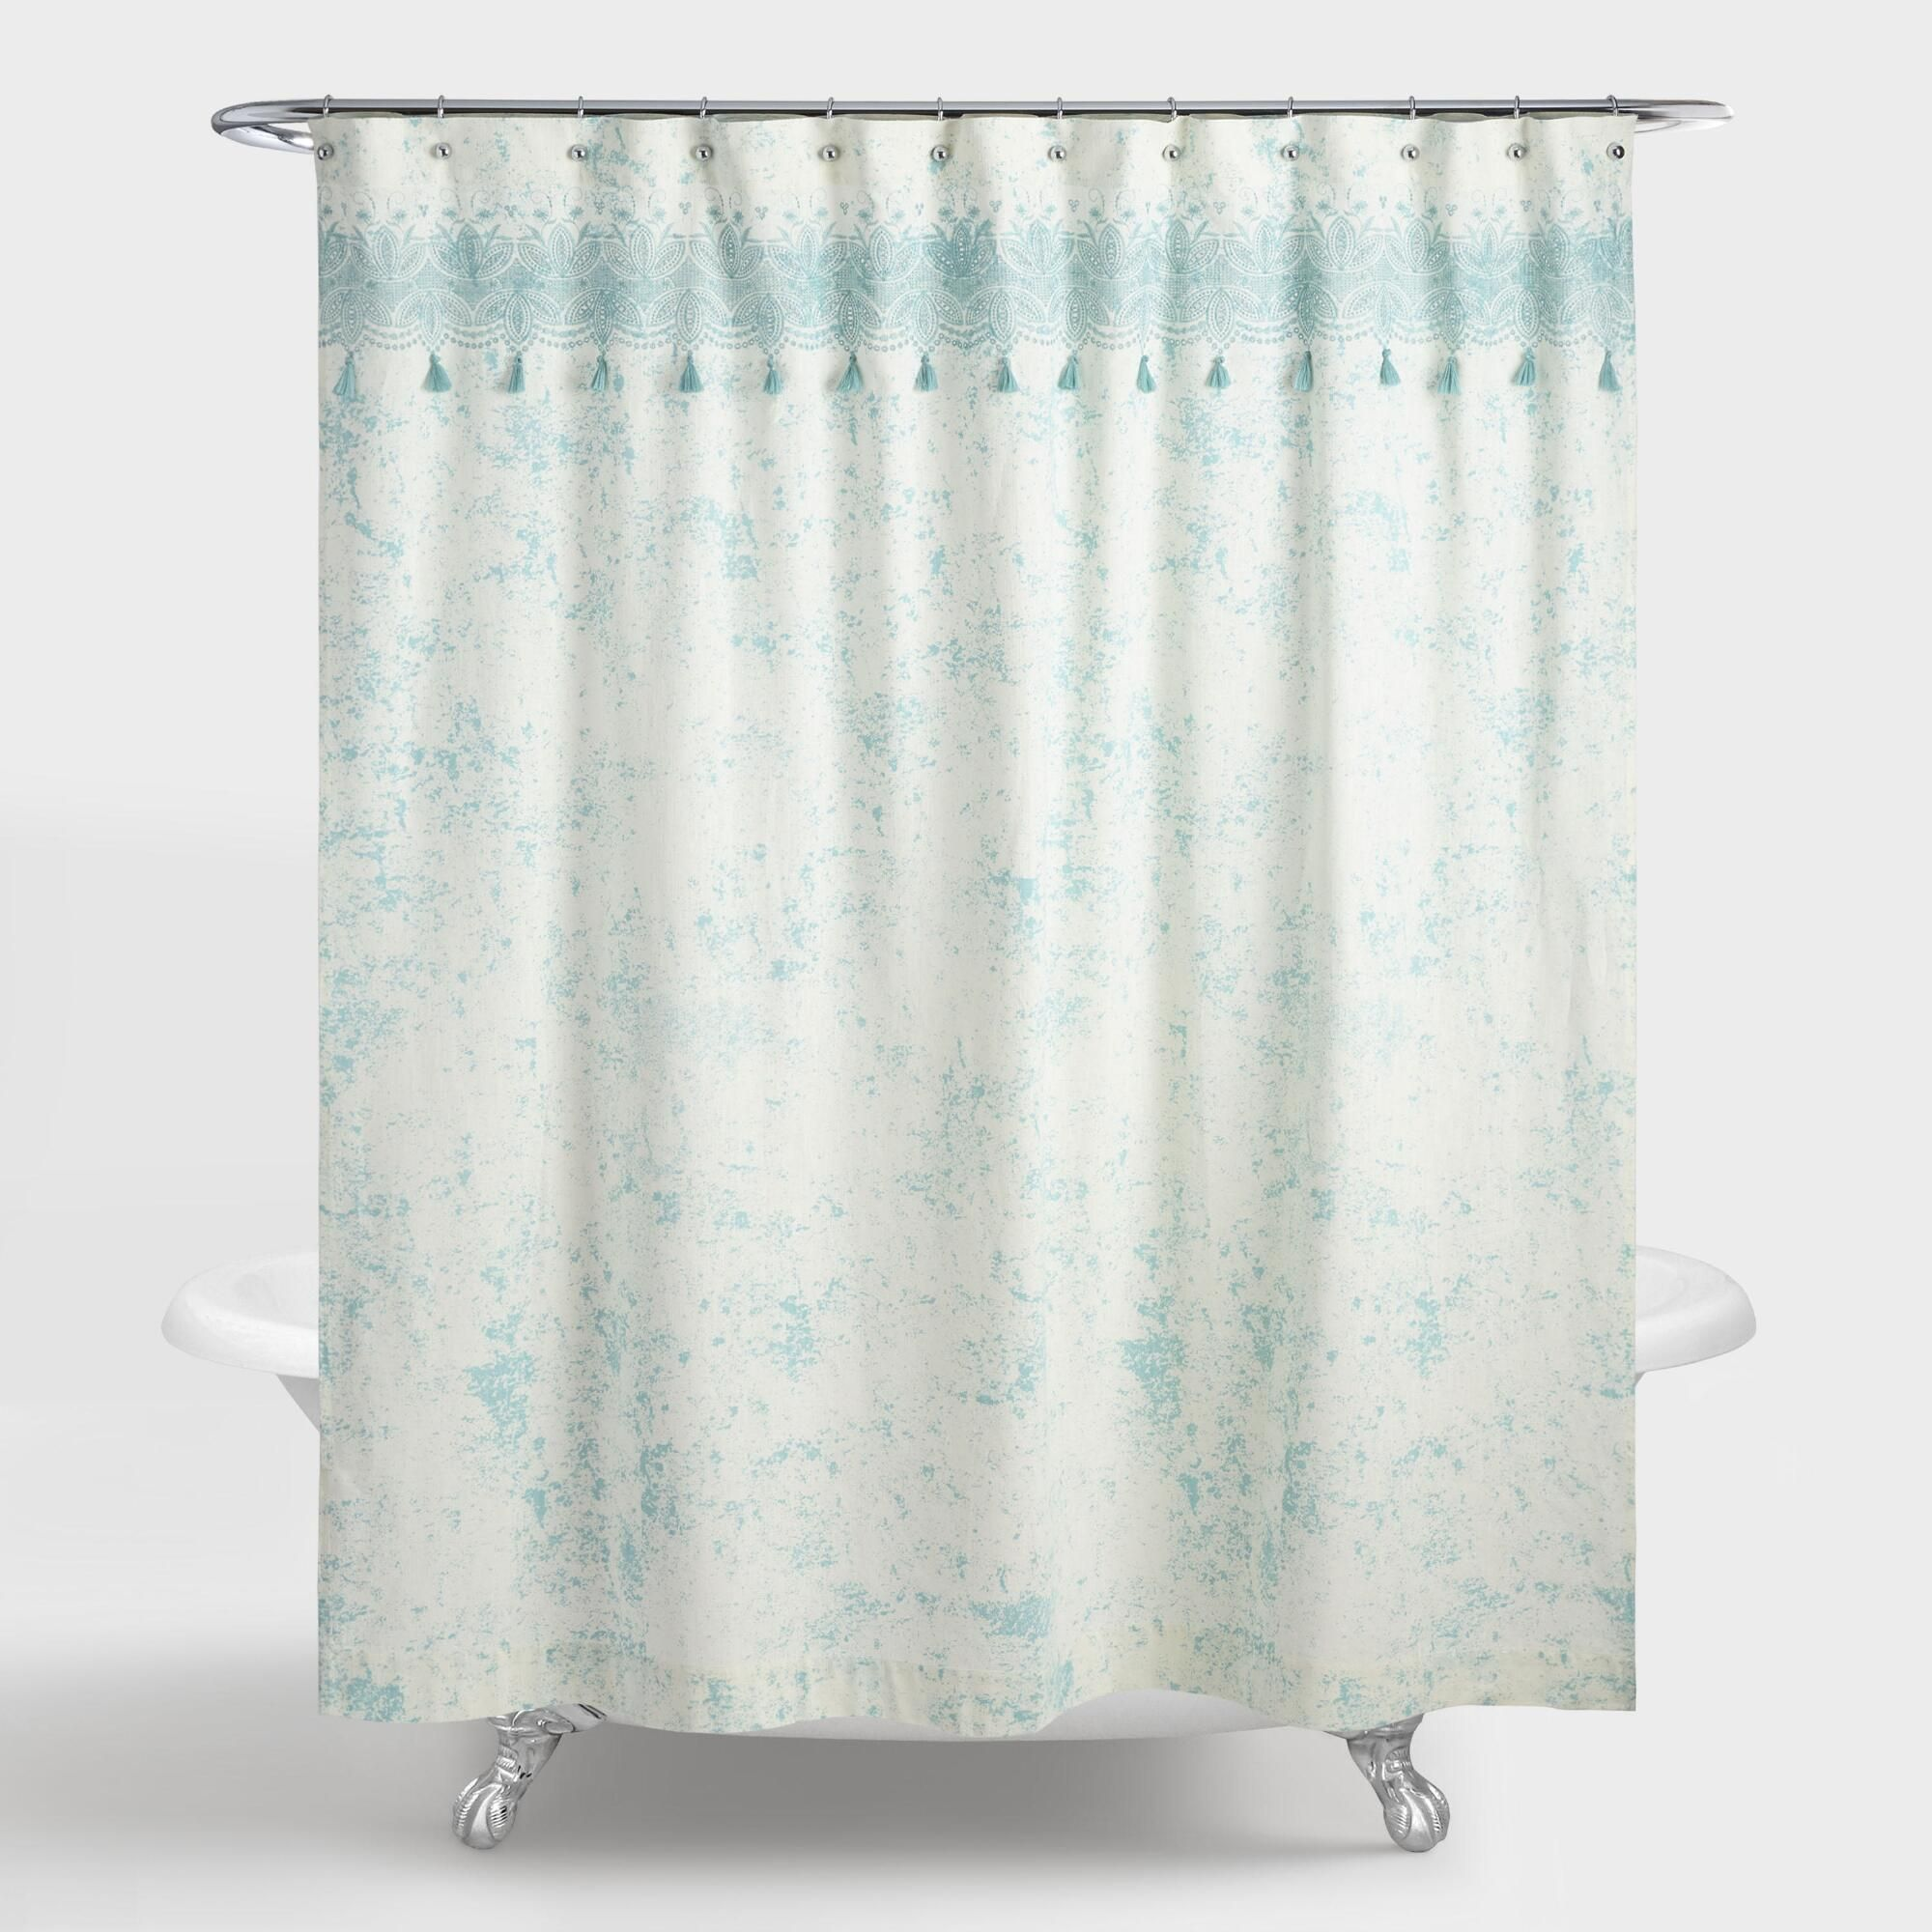 Aqua and ivory embroidered eyelet celia shower curtain by world